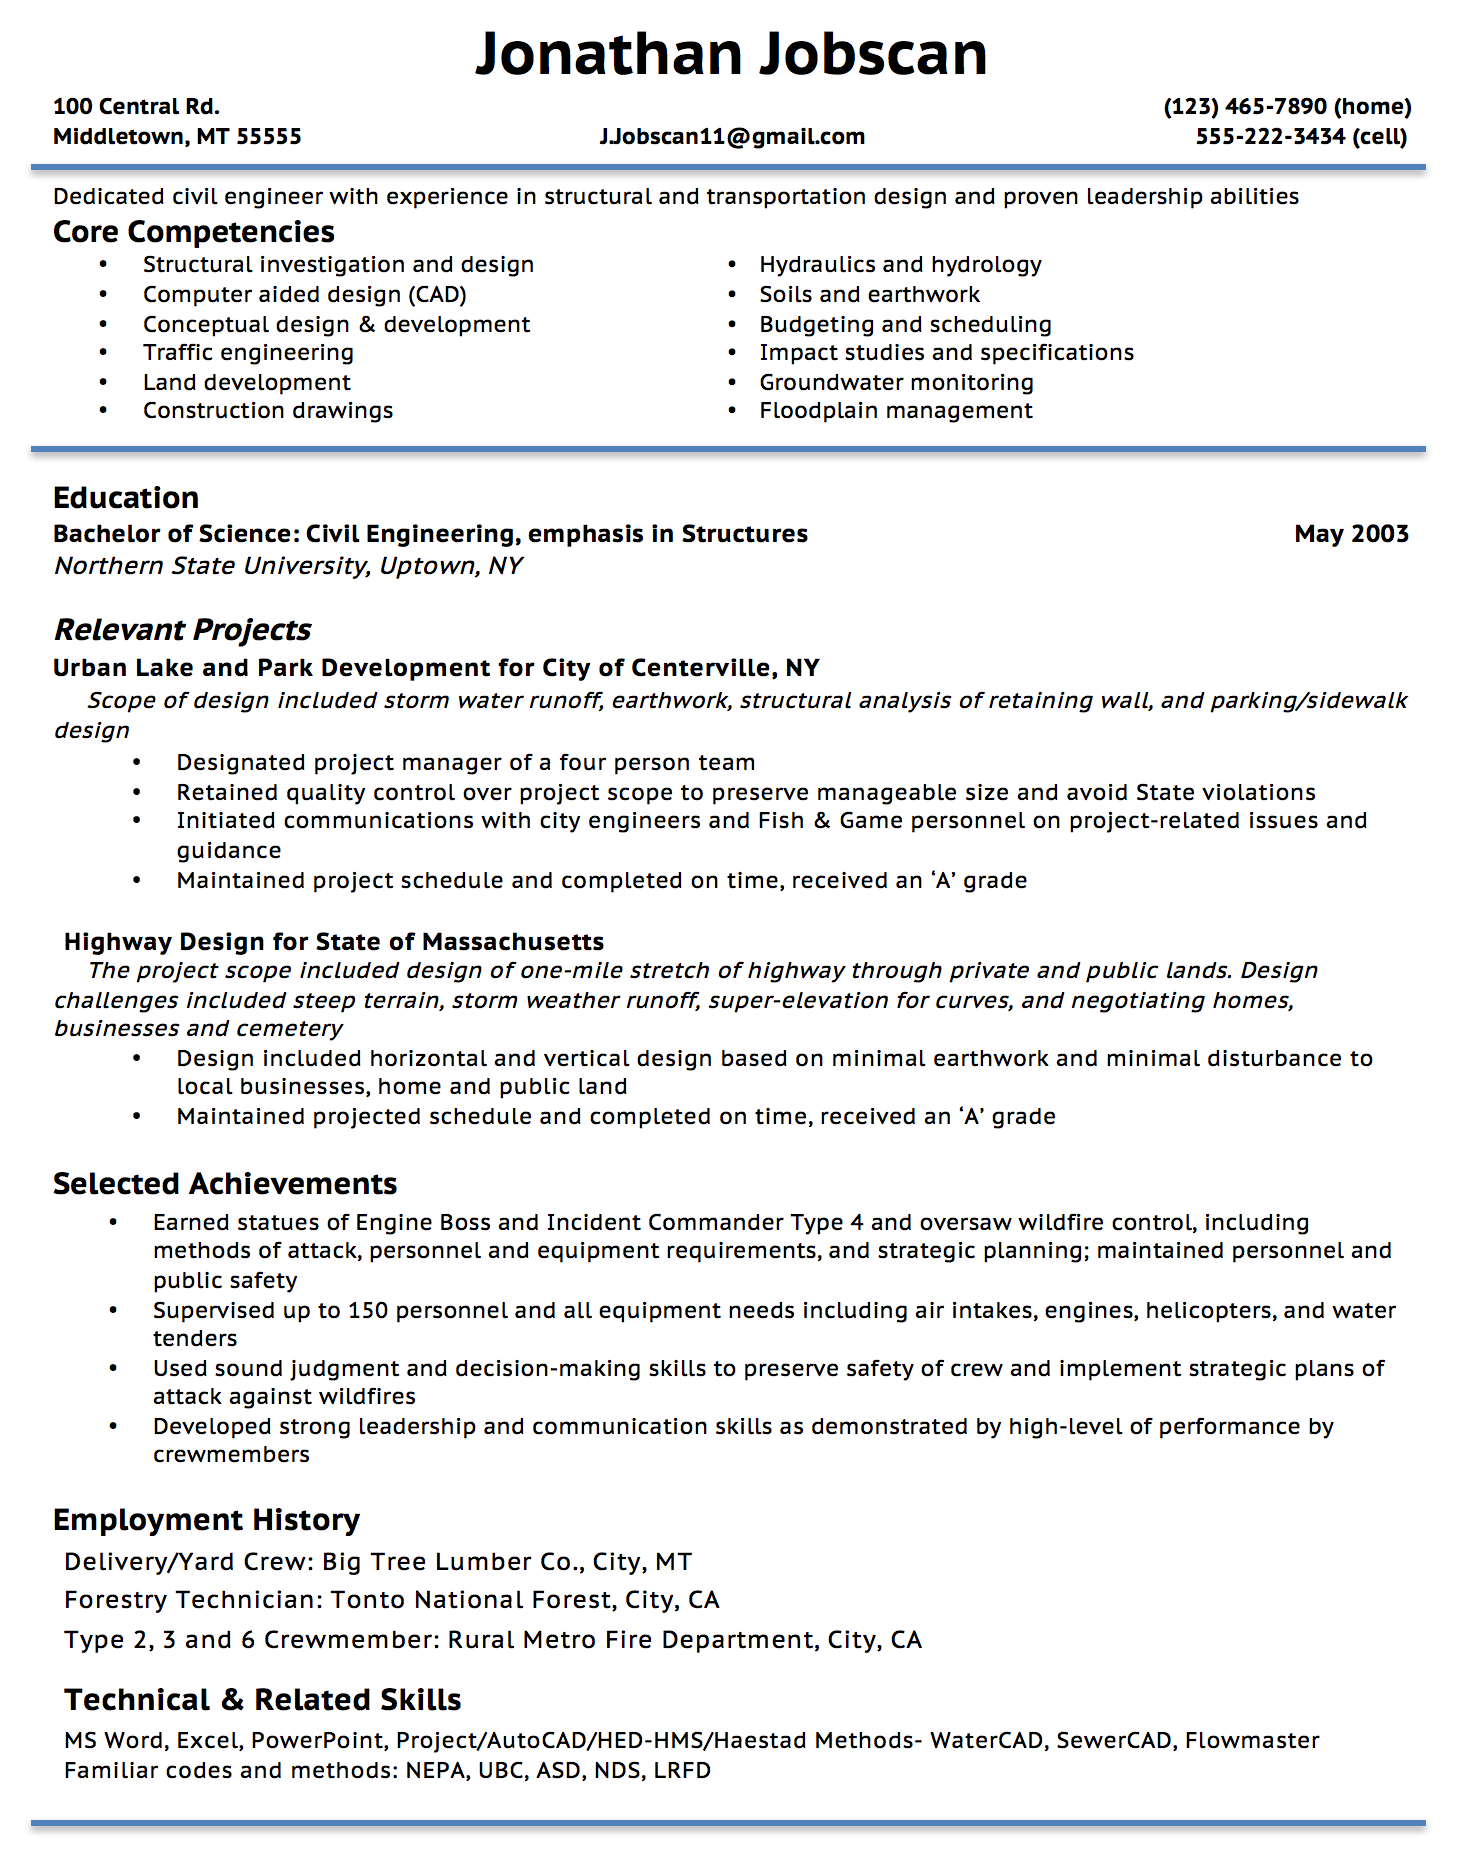 Opposenewapstandardsus  Fascinating Resume Writing Guide  Jobscan With Handsome Example Of A Functional Resume Format With Nice Job Resume Sample Also Resume Templates Latex In Addition Resume For Teenager With No Work Experience And Time Management Skills Resume As Well As Sales Objective Resume Additionally Resume Career Summary Examples From Jobscanco With Opposenewapstandardsus  Handsome Resume Writing Guide  Jobscan With Nice Example Of A Functional Resume Format And Fascinating Job Resume Sample Also Resume Templates Latex In Addition Resume For Teenager With No Work Experience From Jobscanco